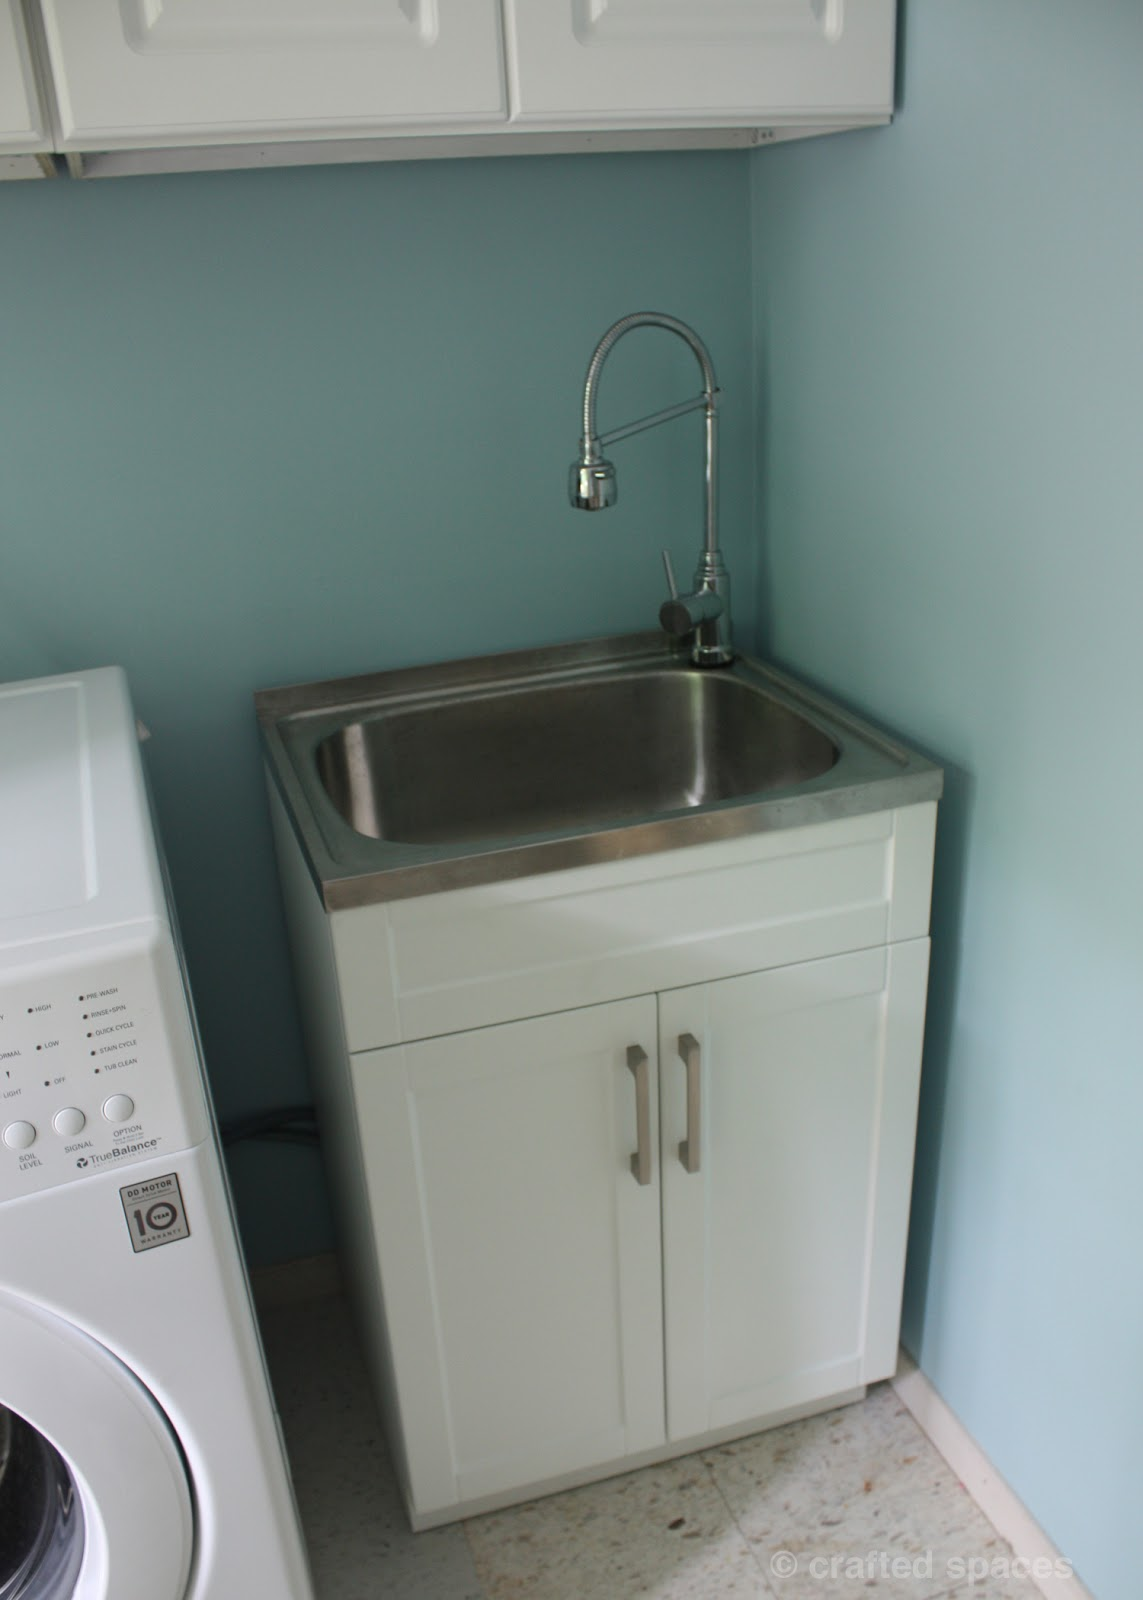 Presenza Utility Sink : We were really happy to get this wonderful sink. It is deep enough to ...